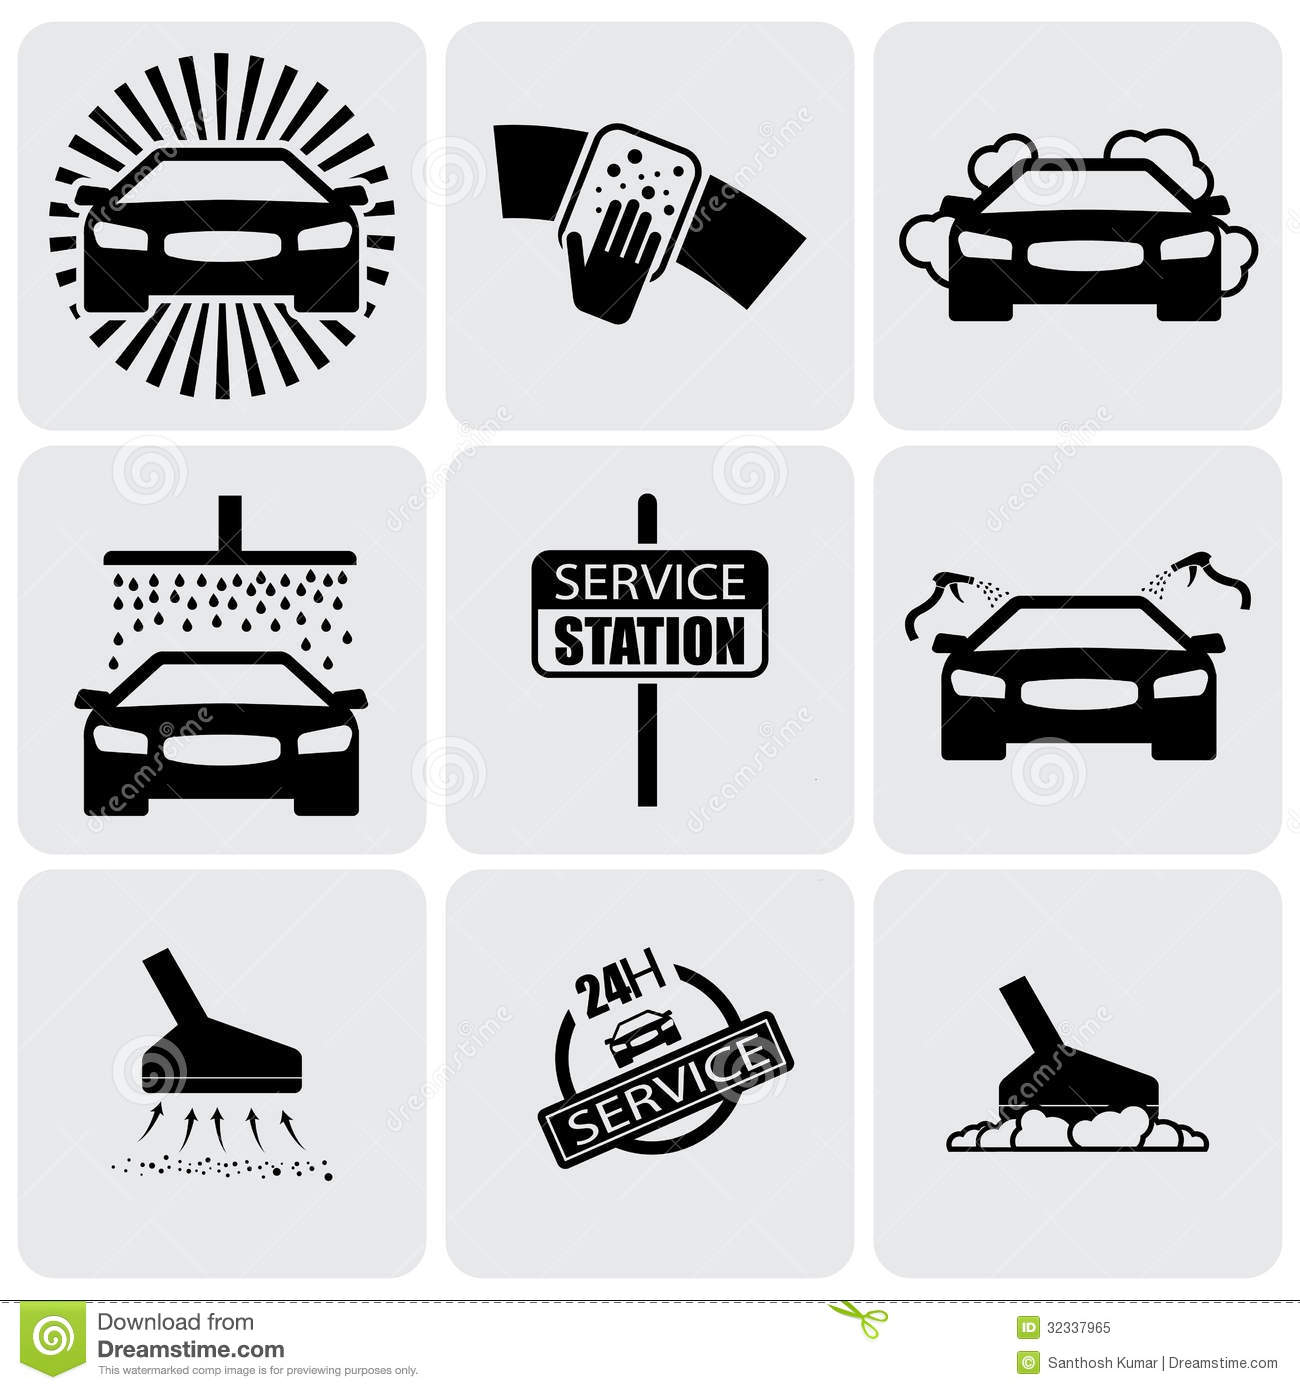 7 Hand Car Wash Icons Images